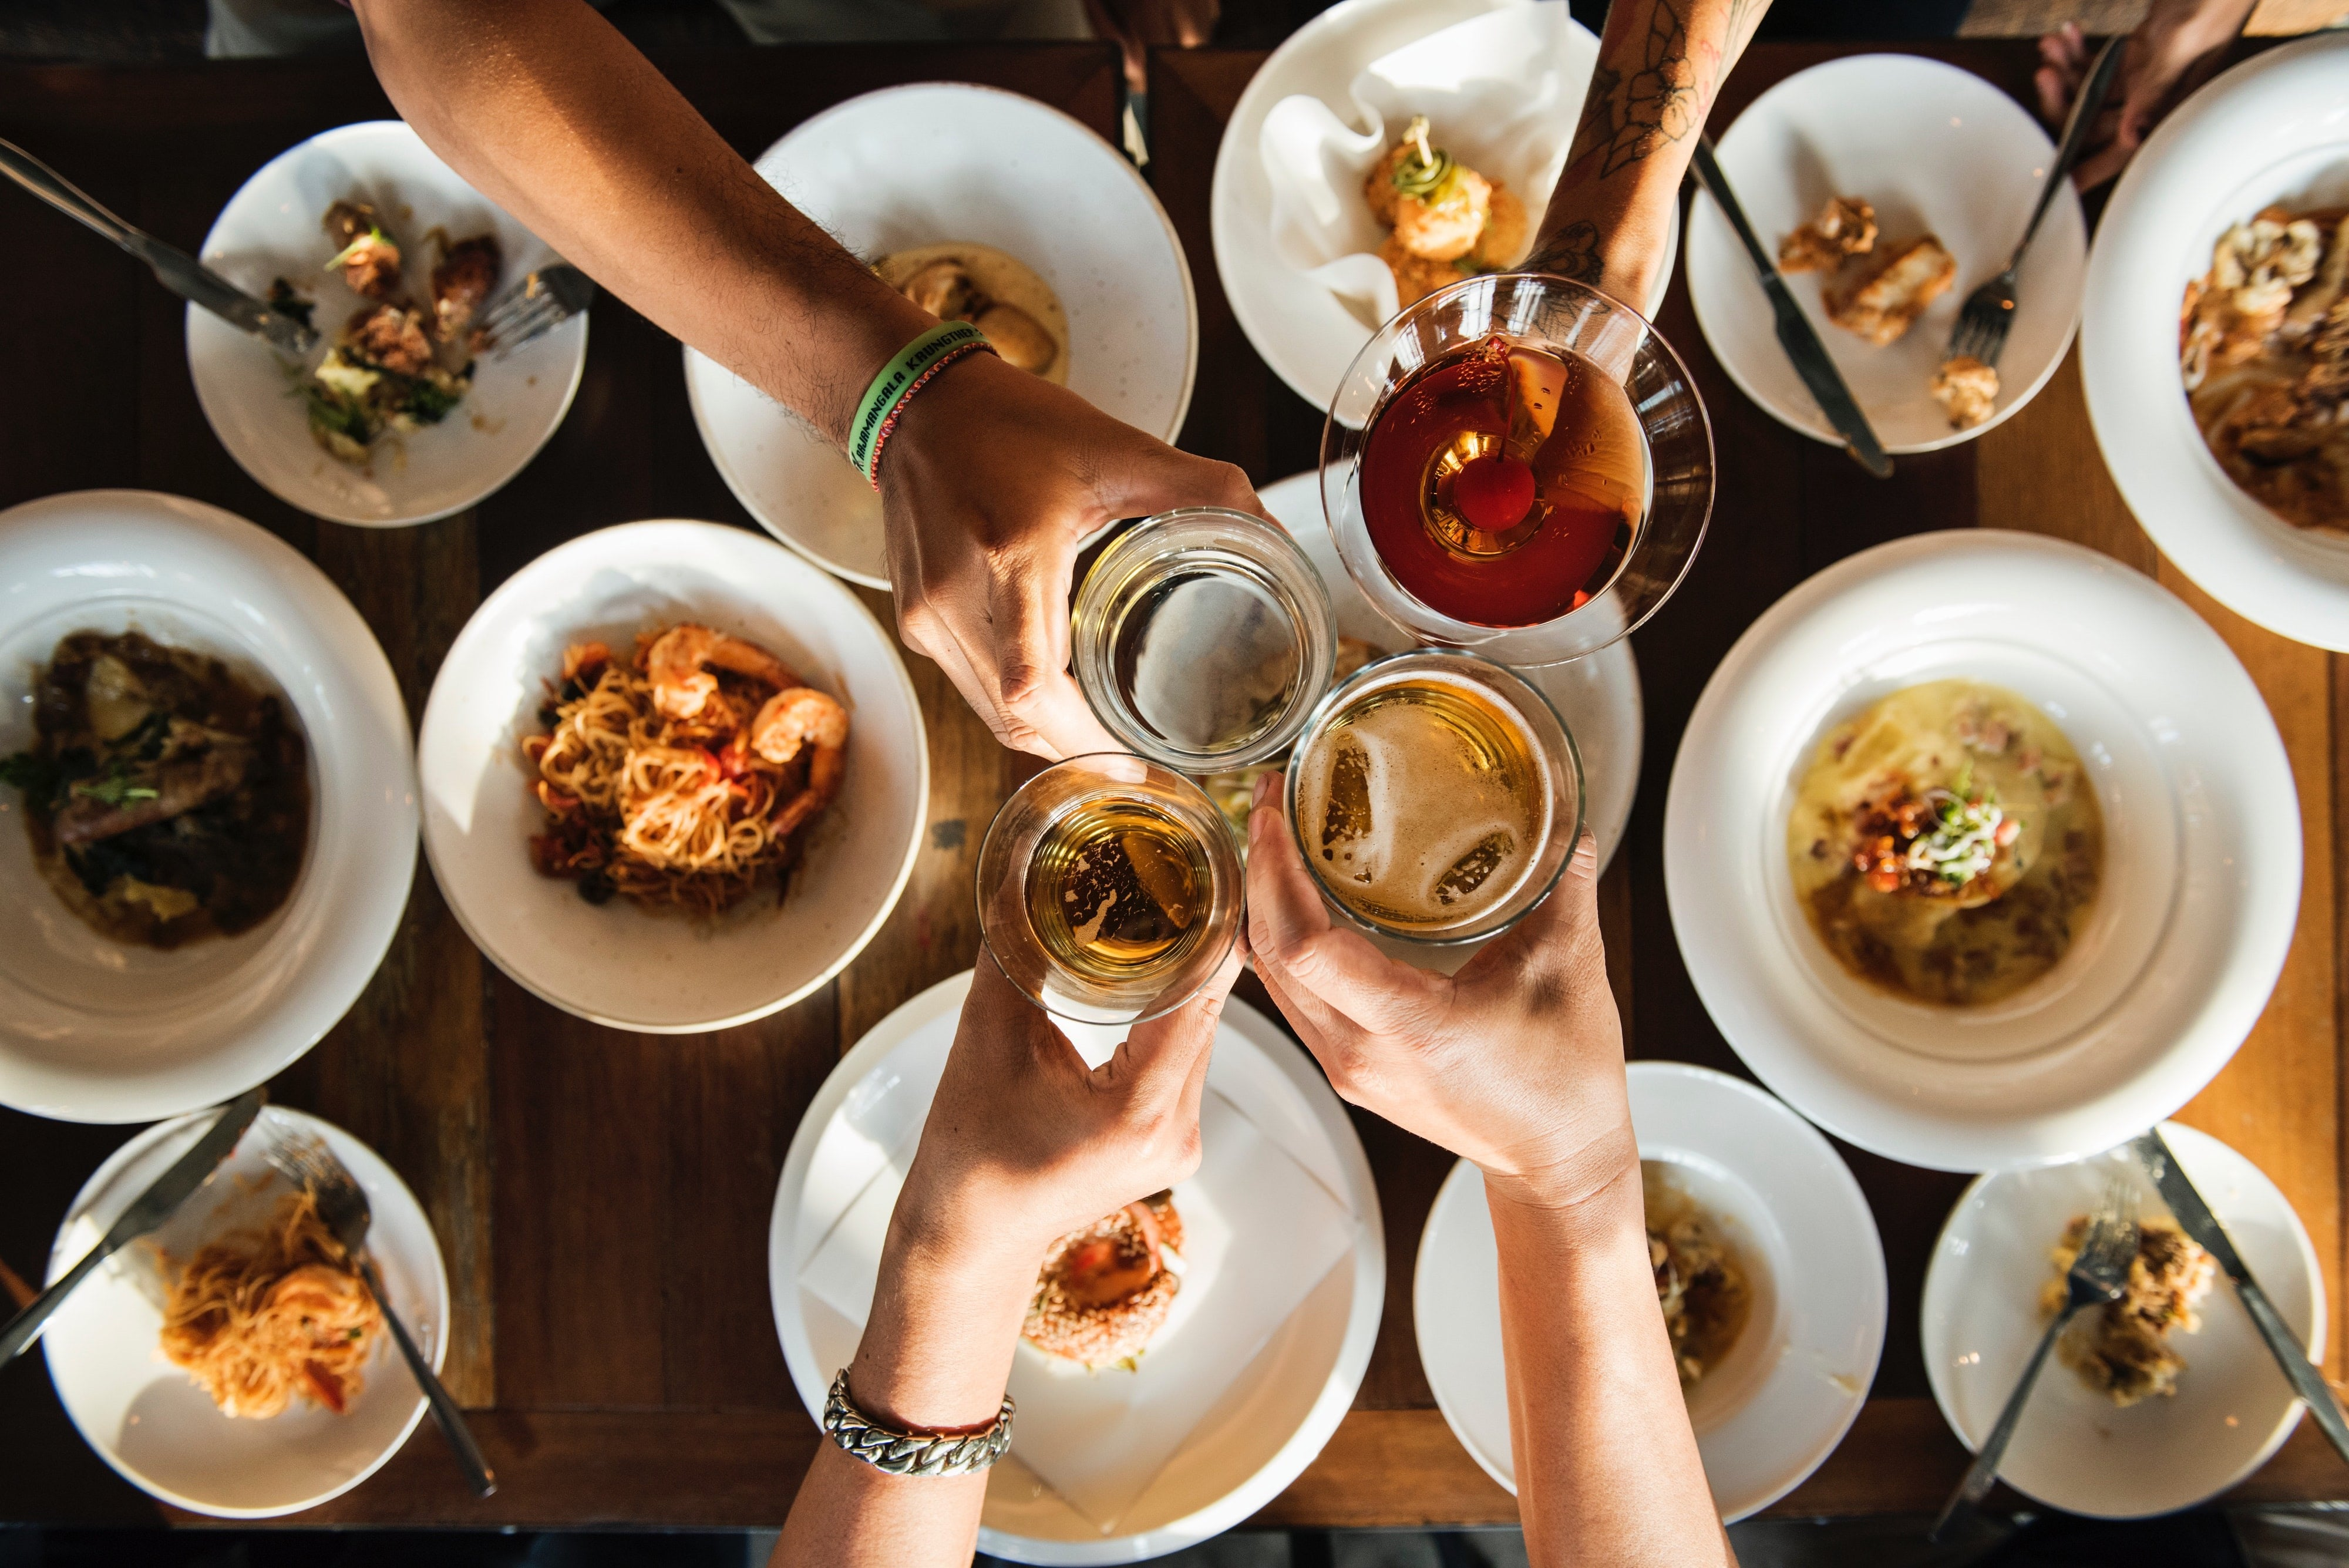 How To Overcome Feelings of Guilt At Social Events